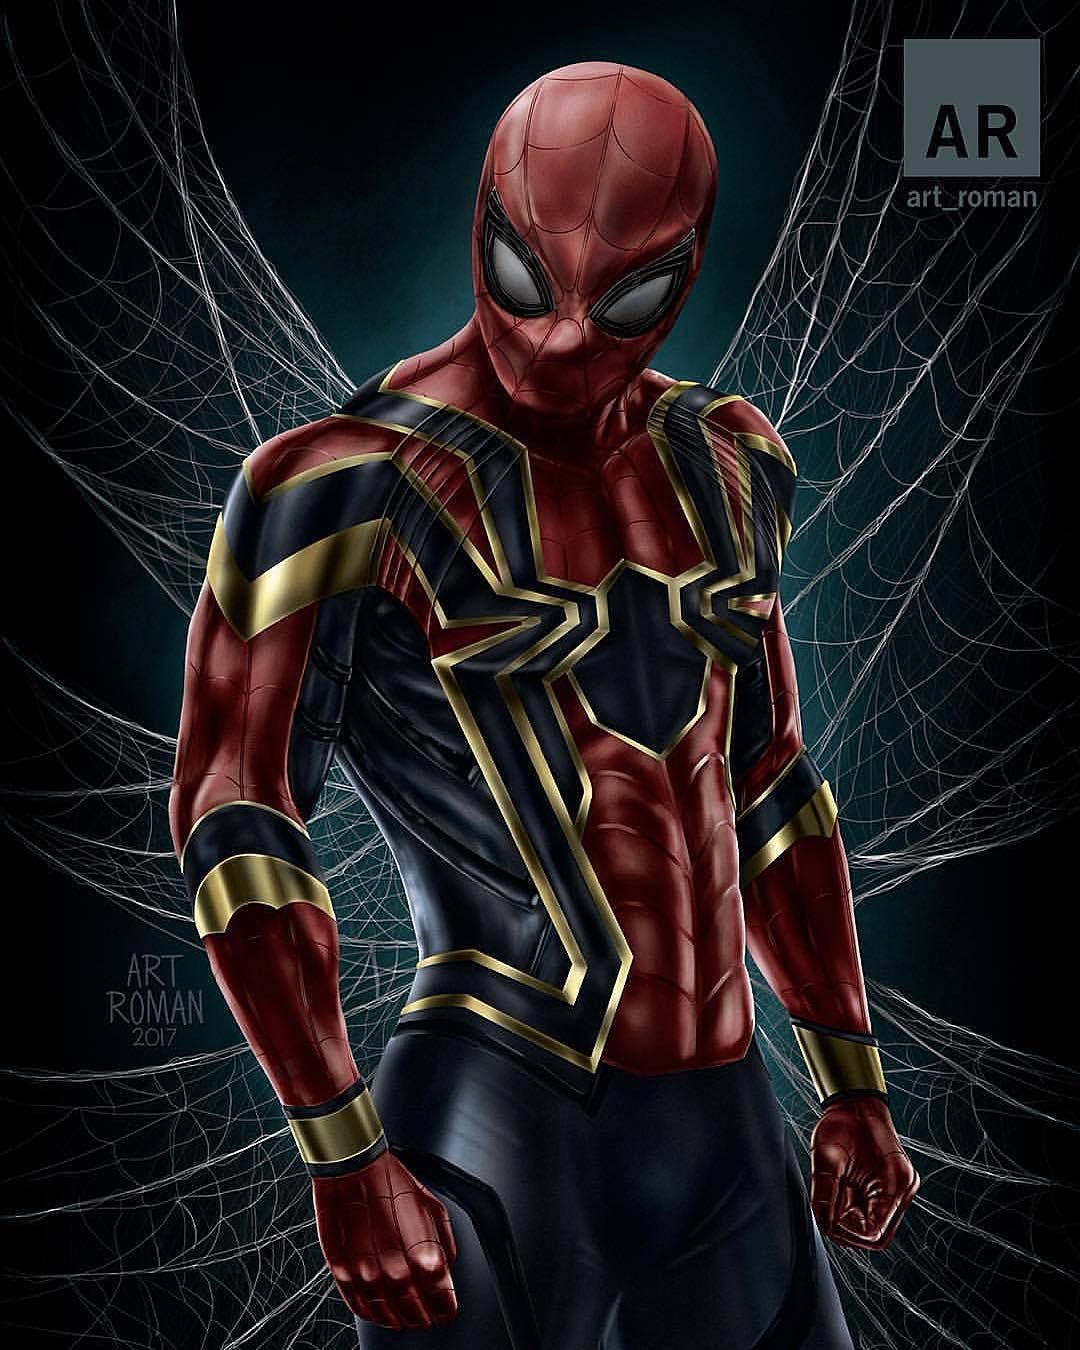 @artroman With A Beautiful Rendition Of The Iron Spider